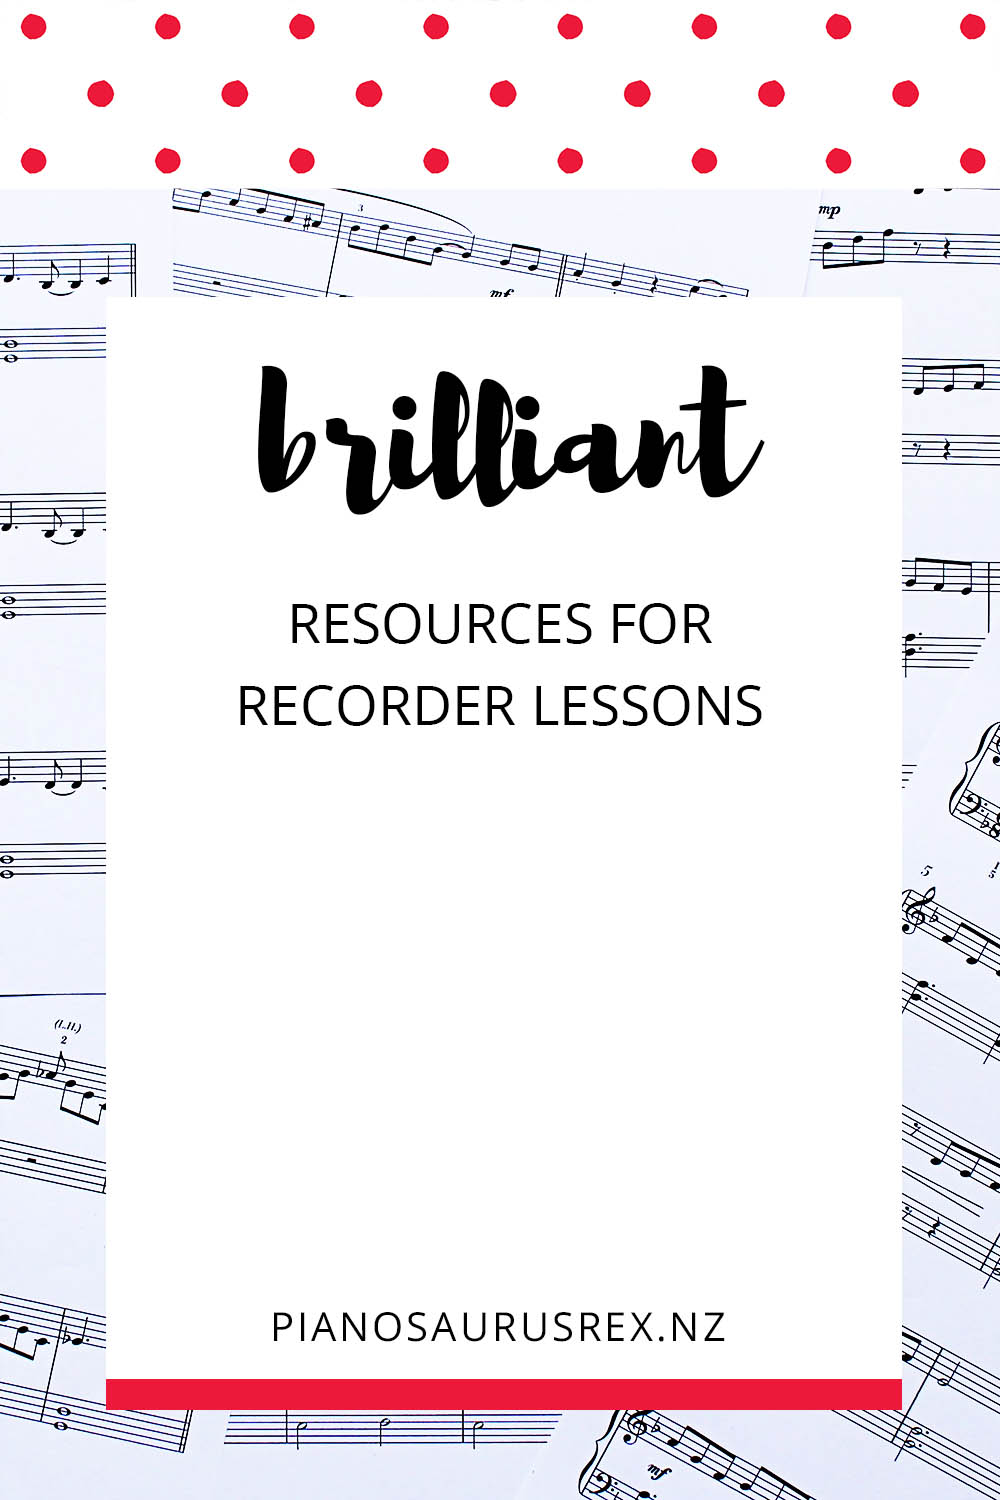 Resources For Recorder Lessons